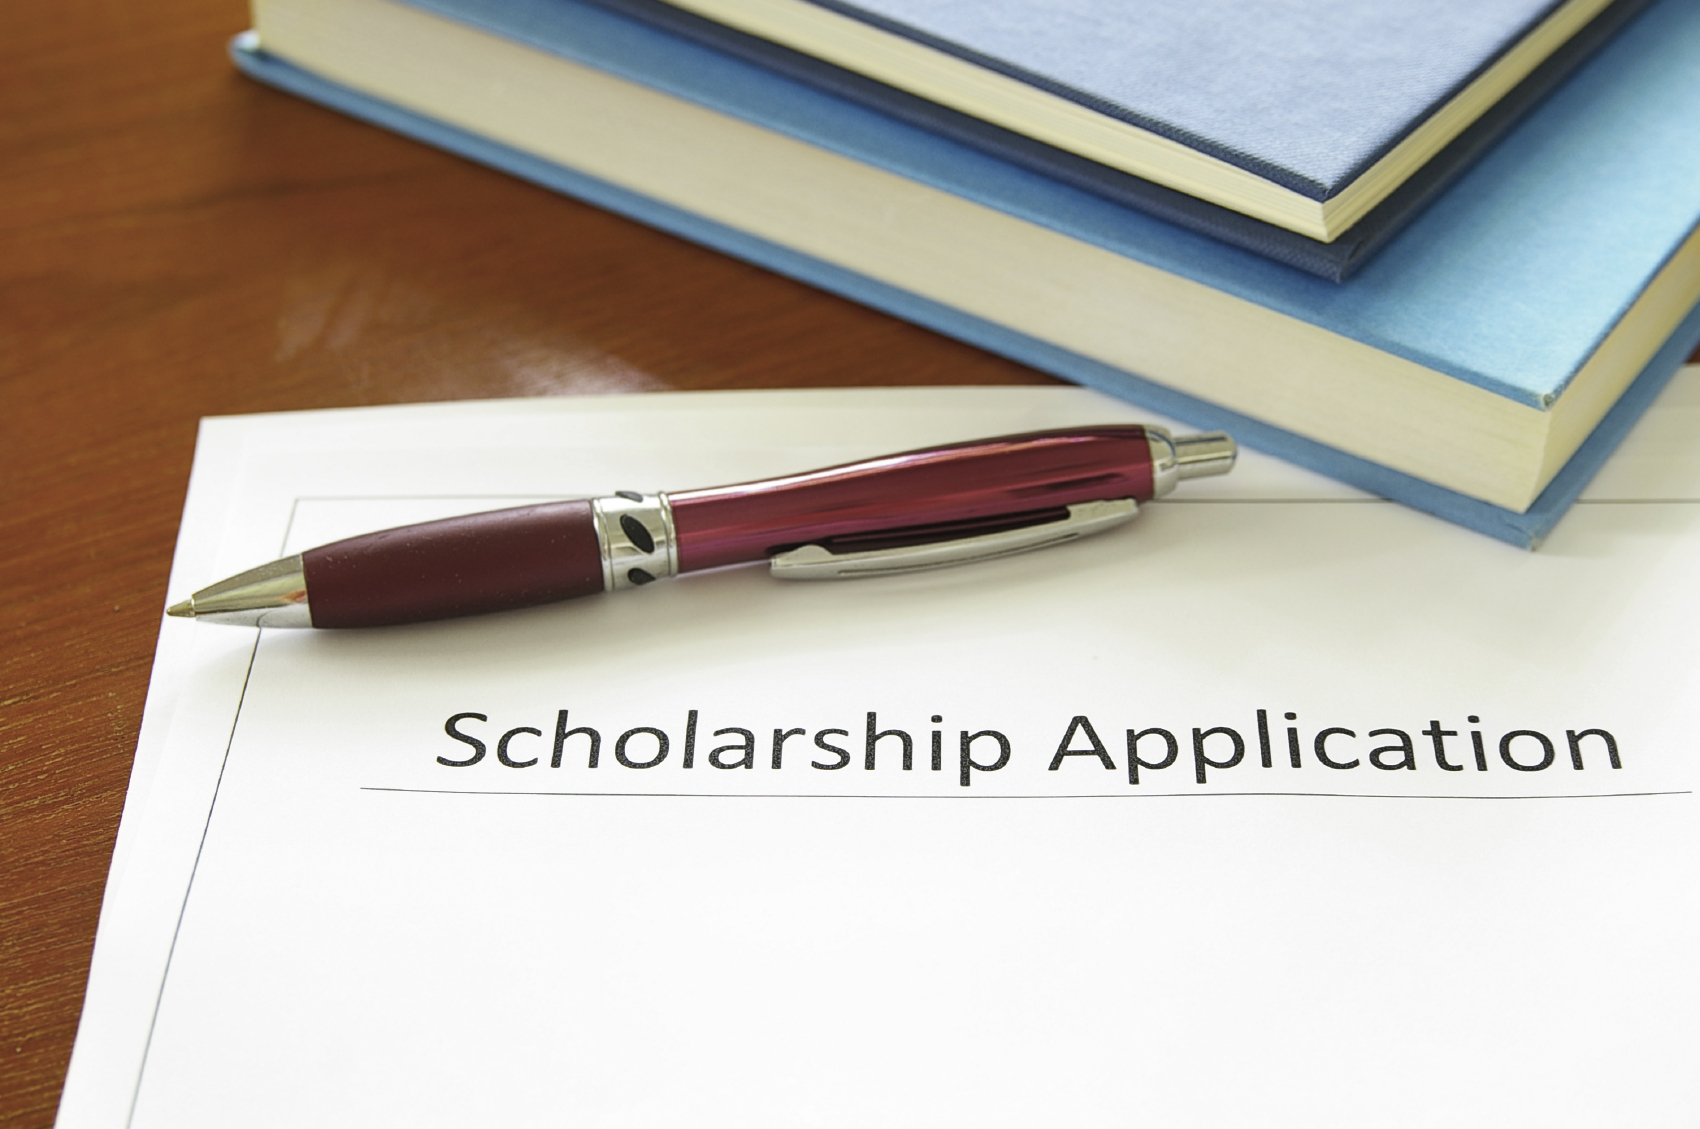 The $1,000scholarship is offered each year for graduate students who are pursuing a career in pharmacy.